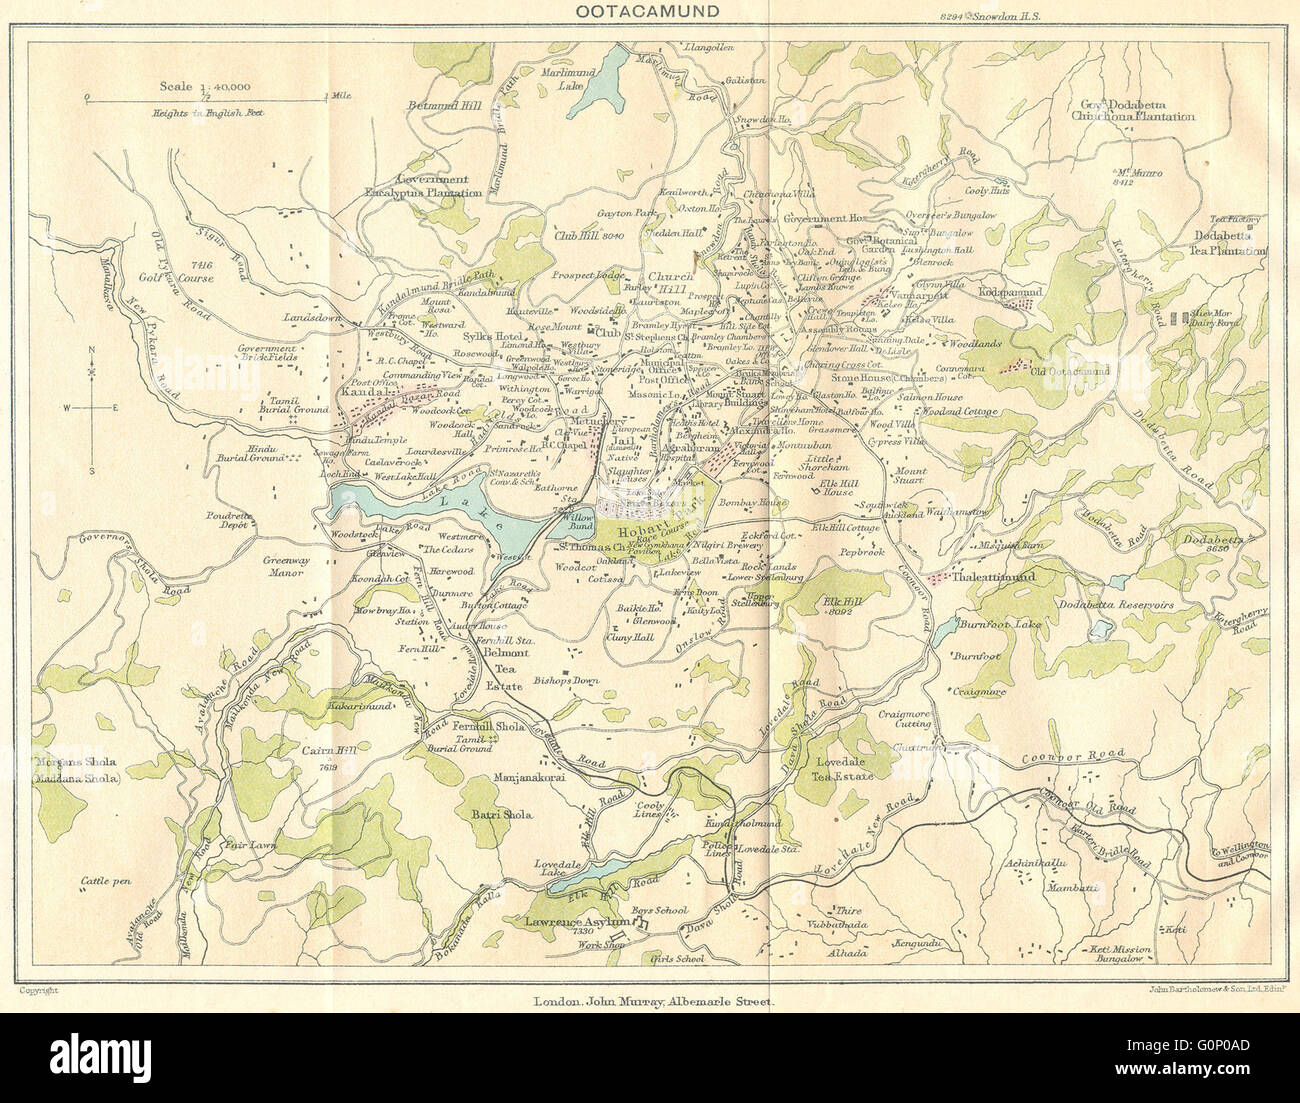 Ooty In India Map.British India Ootacamund Udhagamandalam Udhagai Ooty Hill Stock